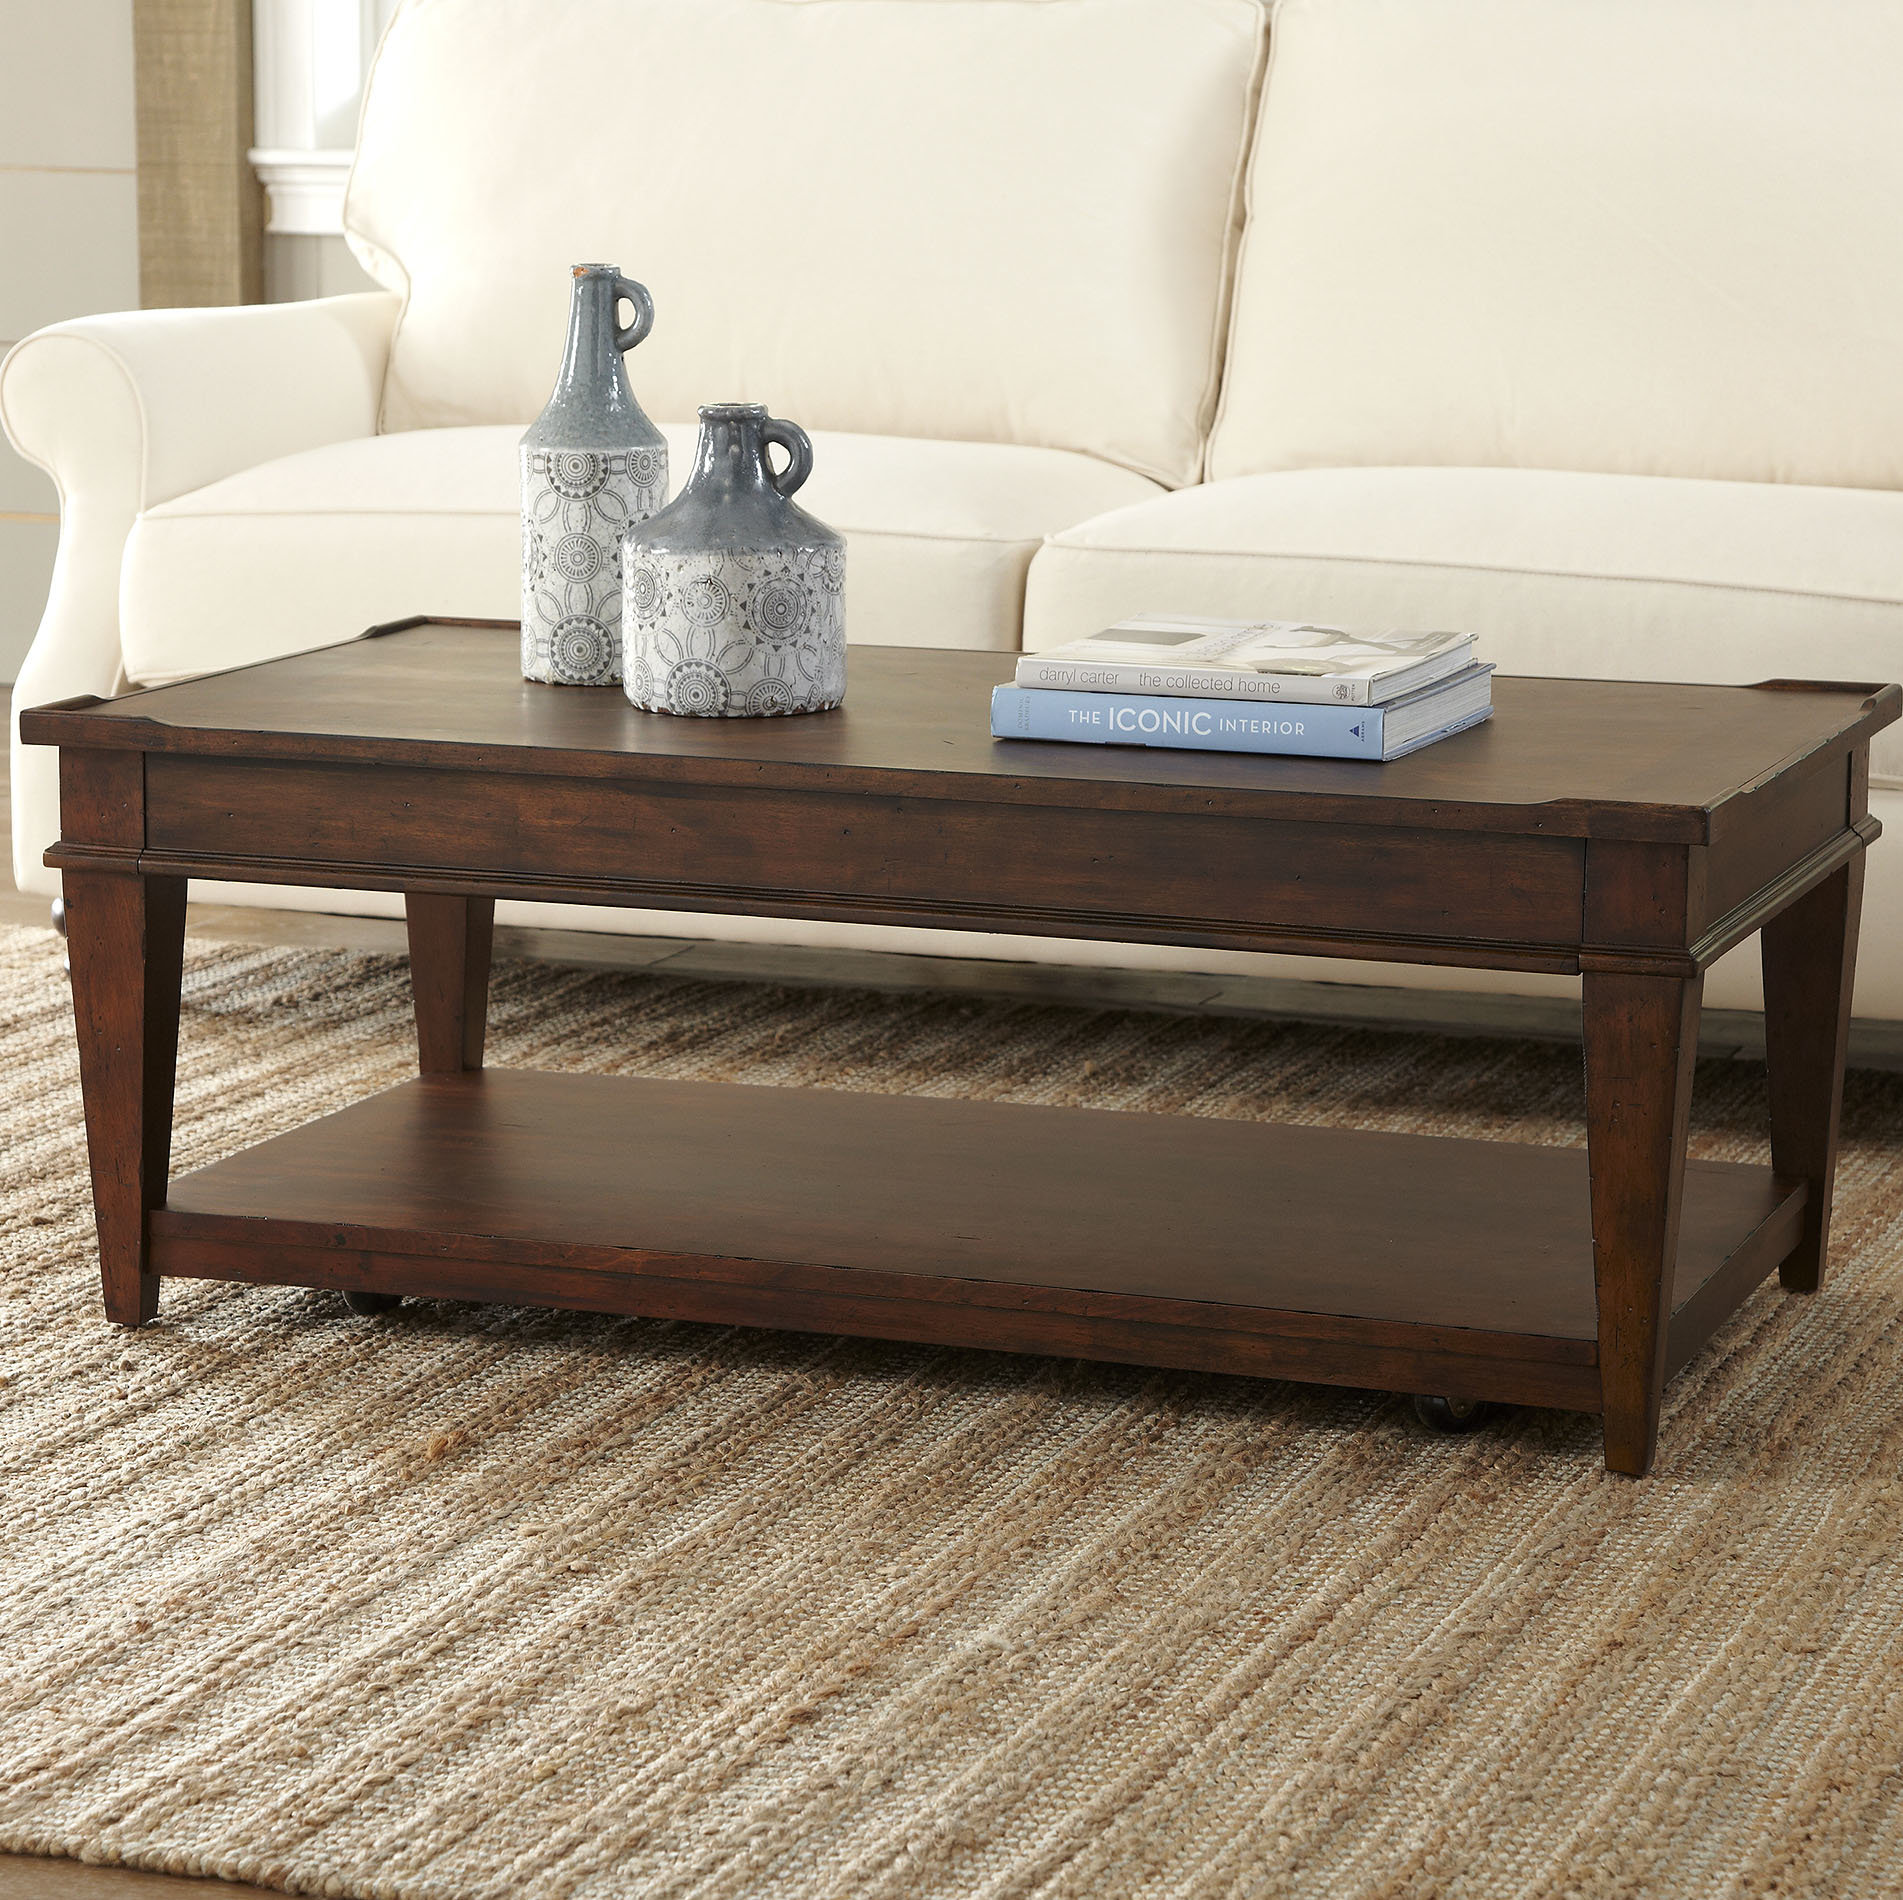 birch lane heritage wheaton coffee table reviews middletown accent patio retro modern furniture pub with chairs better homes wine racks for home folding glass companies outdoor